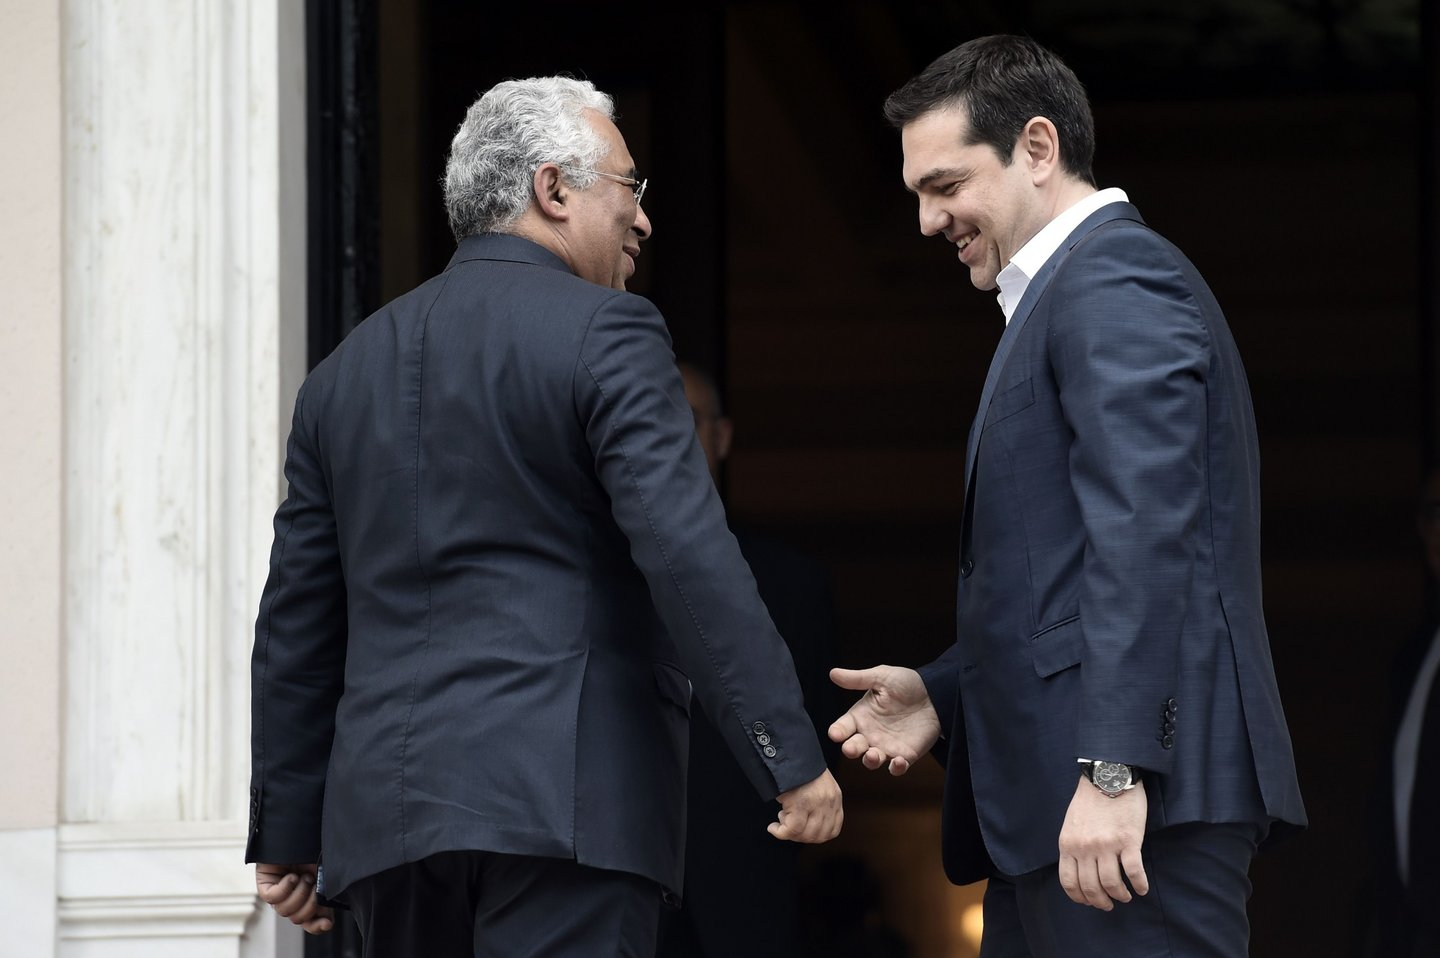 Greek Prime Minister Alexis Tsipras (R) welcomes his Portugese counterpart Antonio Costa prior to their meeting in Athens on April 11, 2016. / AFP / ARIS MESSINIS (Photo credit should read ARIS MESSINIS/AFP/Getty Images)